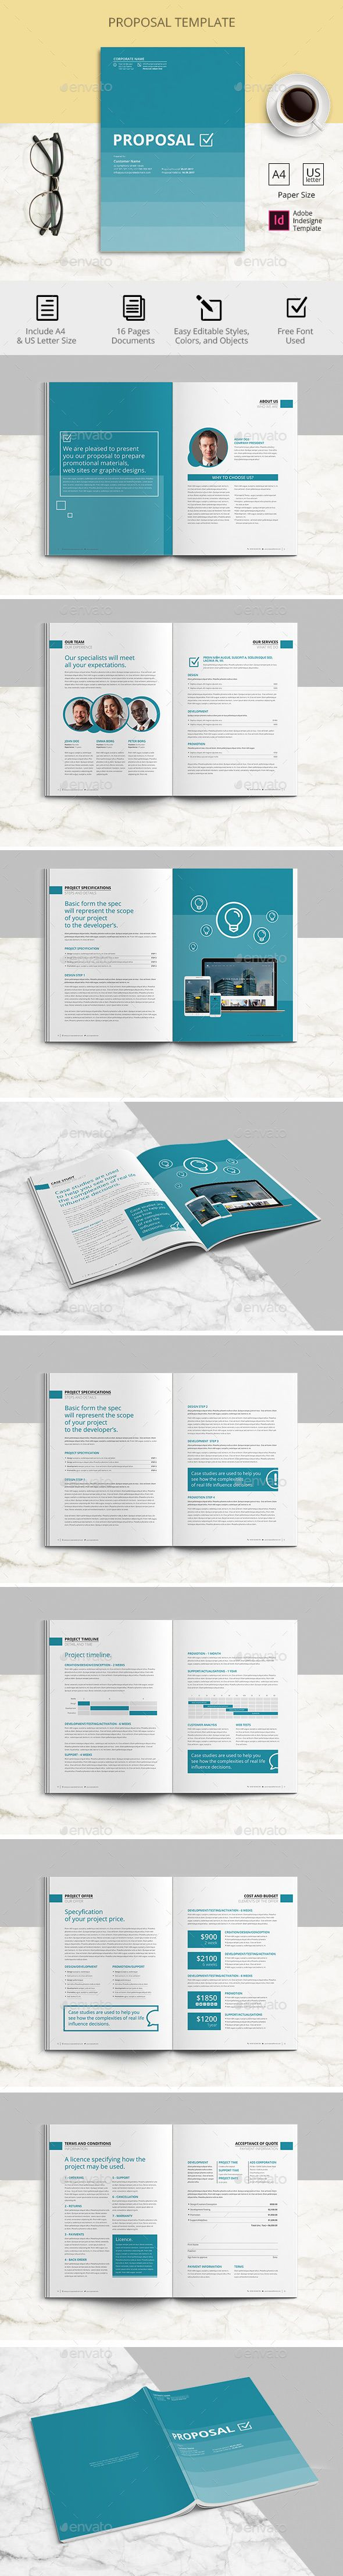 Proposal Adobe Indesign Template Proposals Invoices Stationery